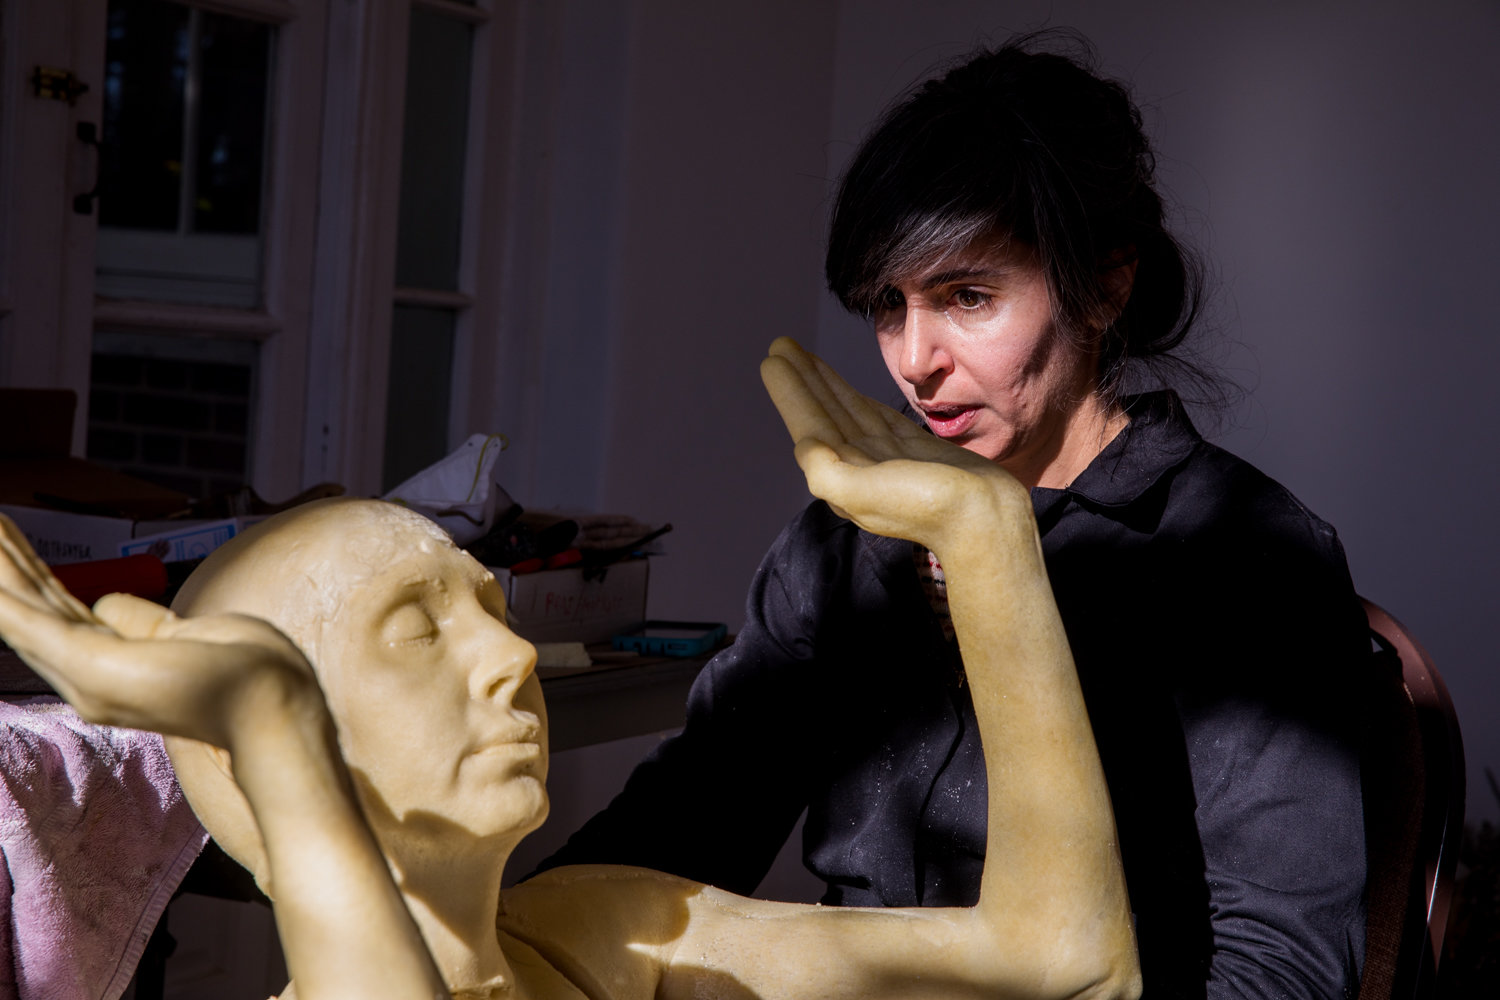 Kymia Nawabi works with a mannequin as part of her costume design project for her Winter Workspace residency at Wave Hill.